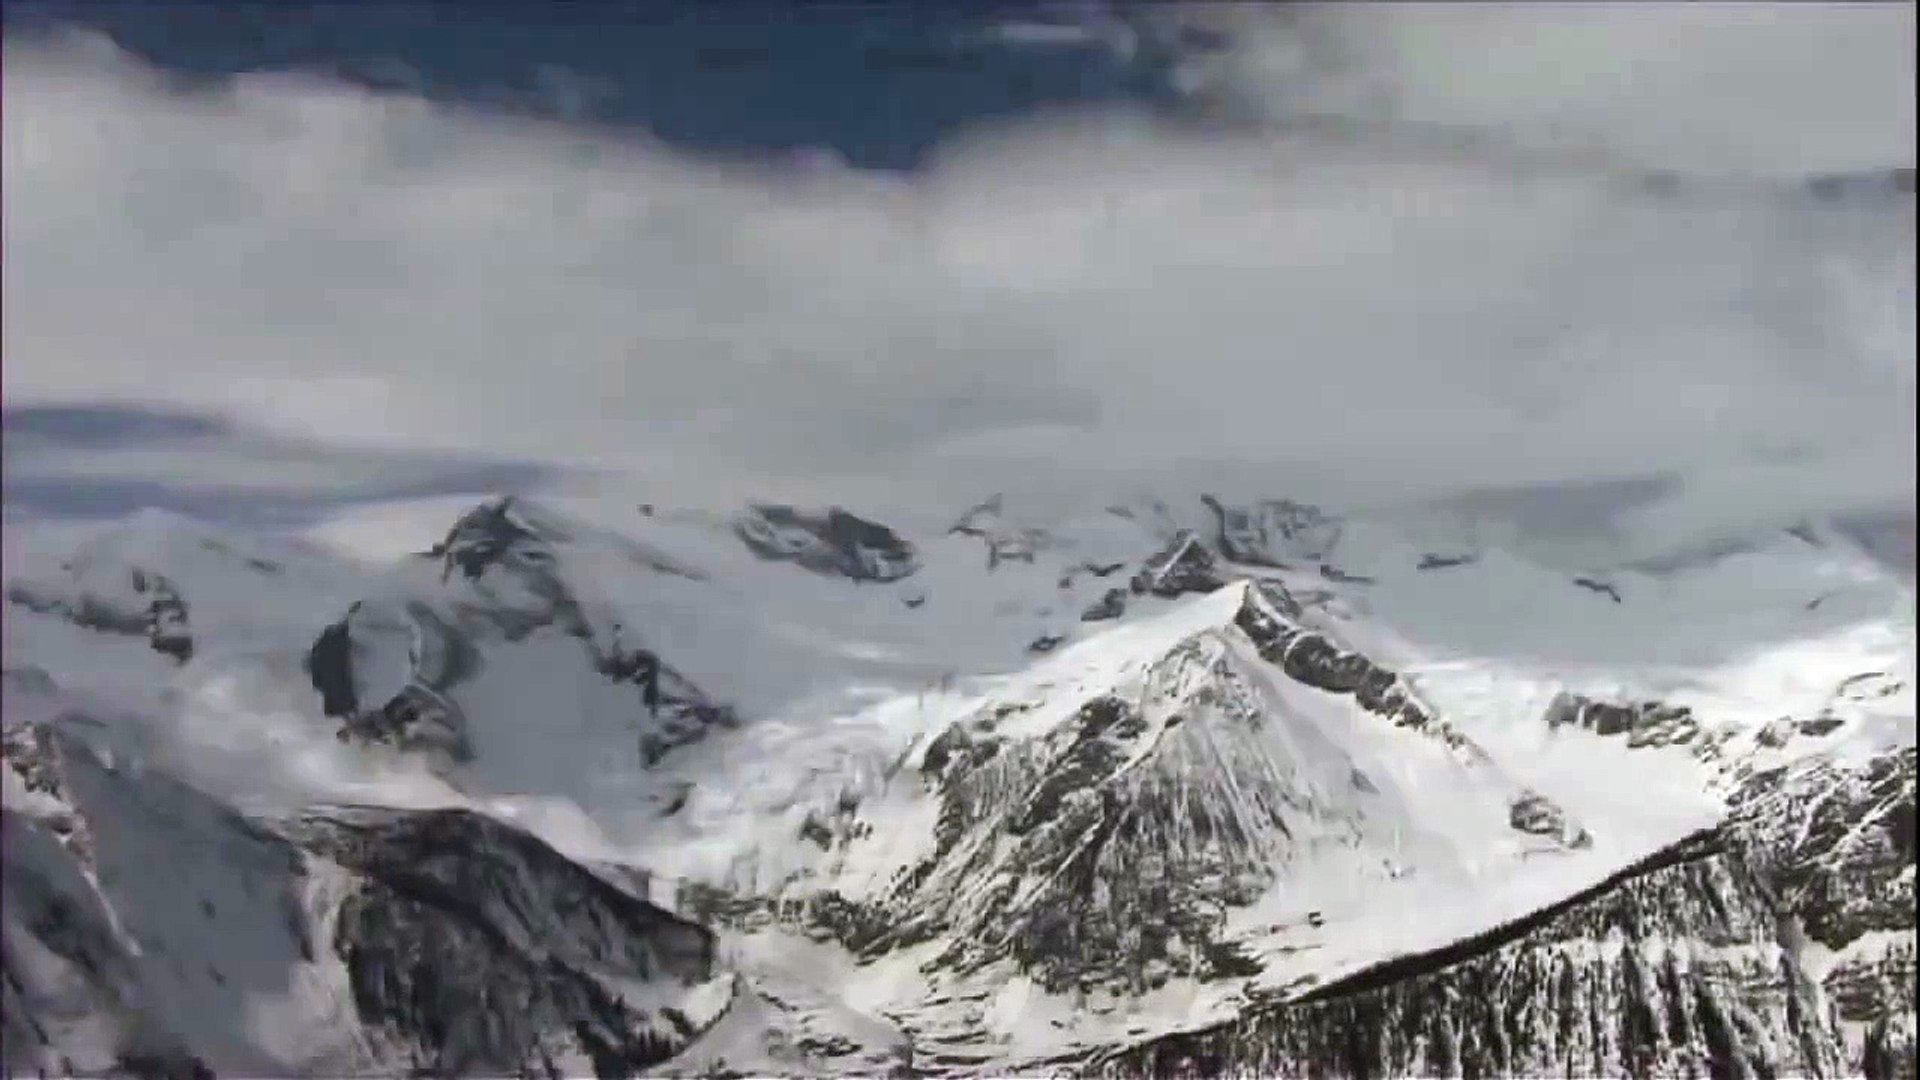 Winter Sports, British Columbia, Canada - Unravel Travel TV